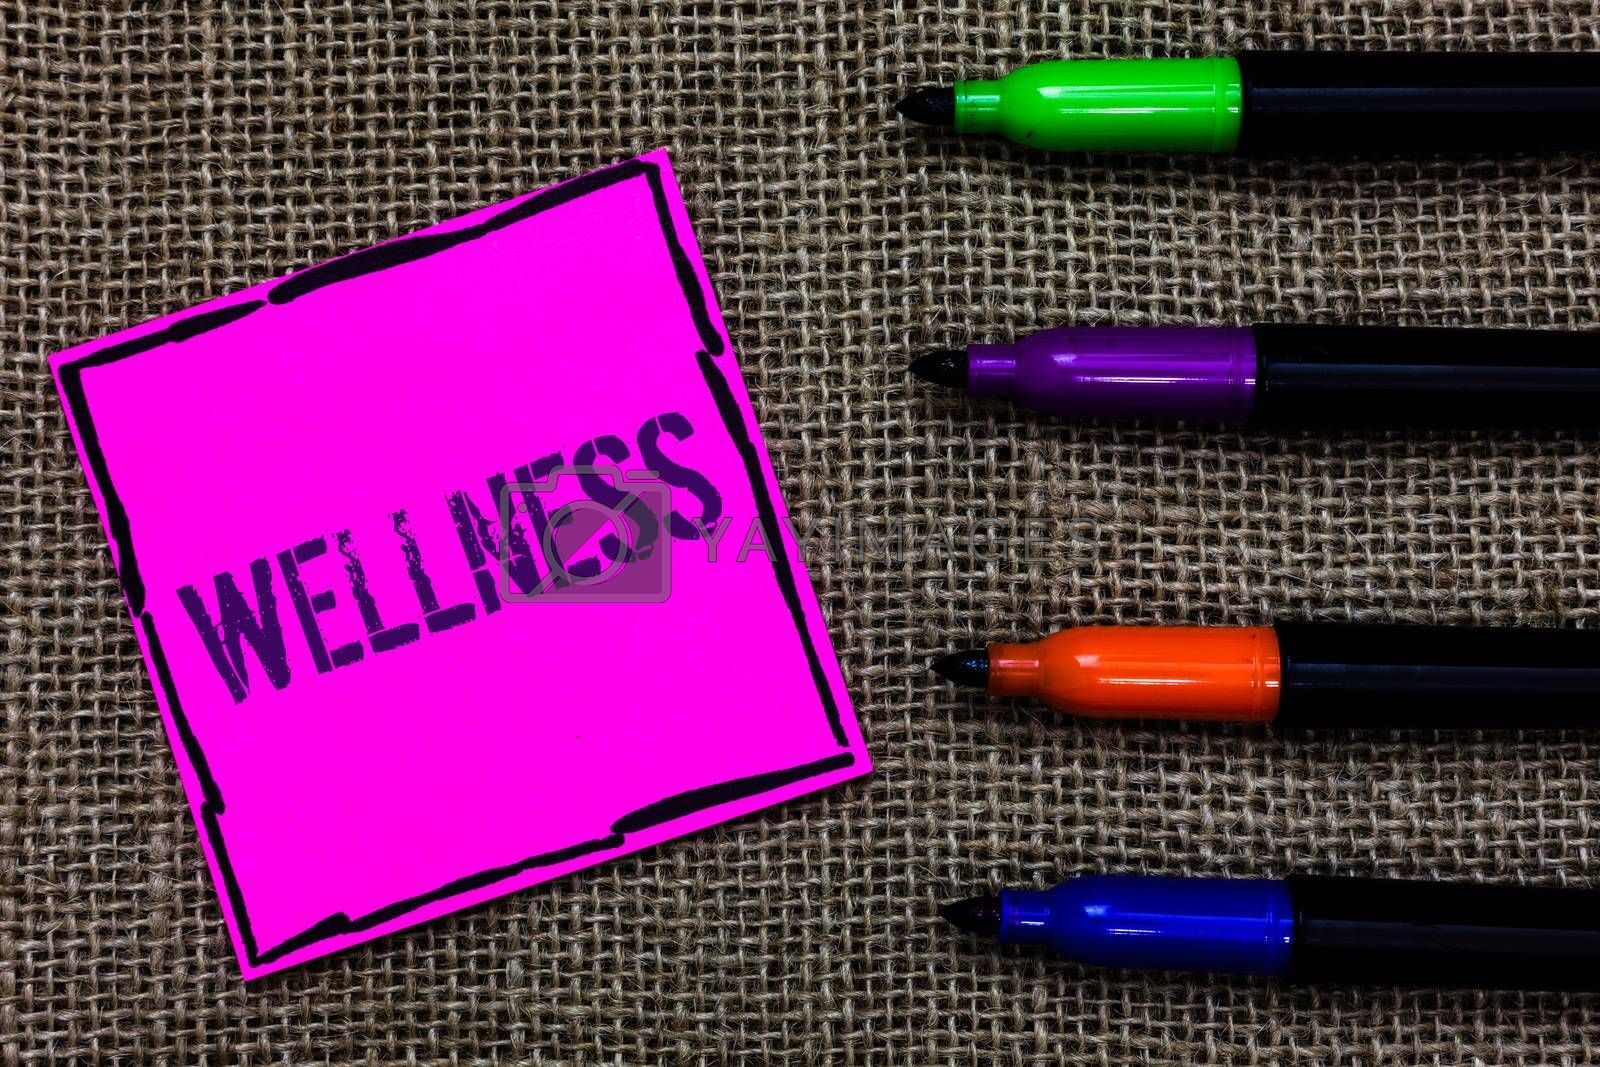 Writing note showing Wellness. Business photo showcasing Making healthy choices complete mental physical relaxation Marker pens art pink paper nice mat love thought black shadow memories. by Artur Szczybylo